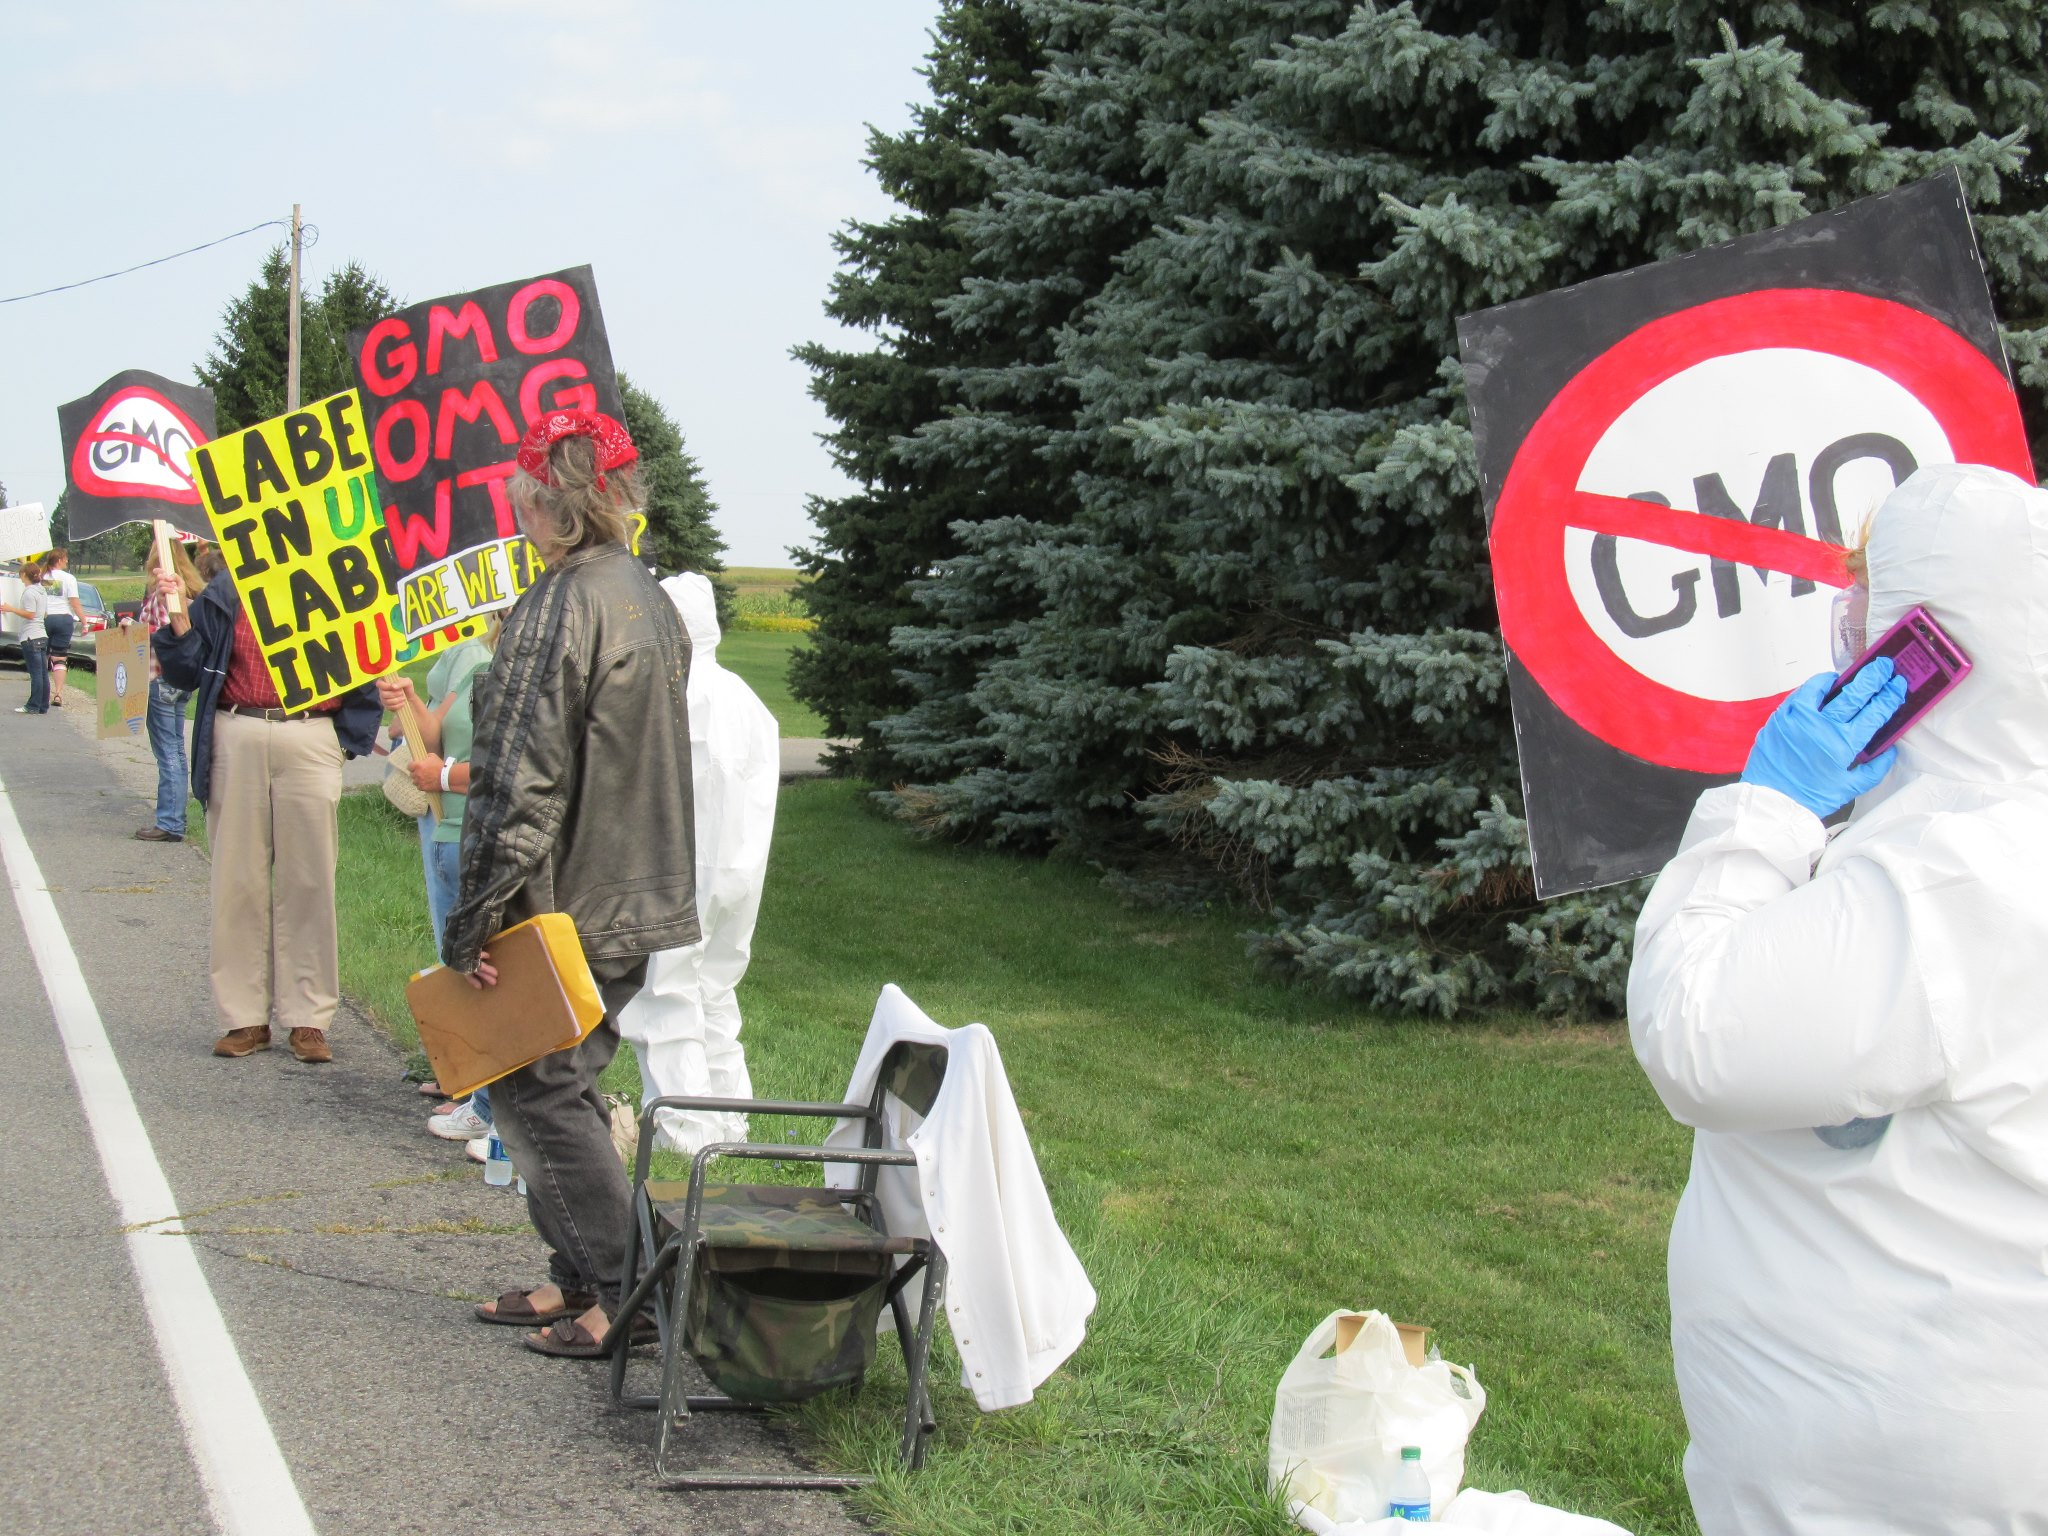 occupy monsanto mason michigan9 INCIDENT REPORT: Photos from Monsantos facility in Mason, Michigan Protest Occupy Monsanto Michigan MI Mason GMO Labeling gmo Genetics Crimes Unit Demonstration Decontamination Event Activism